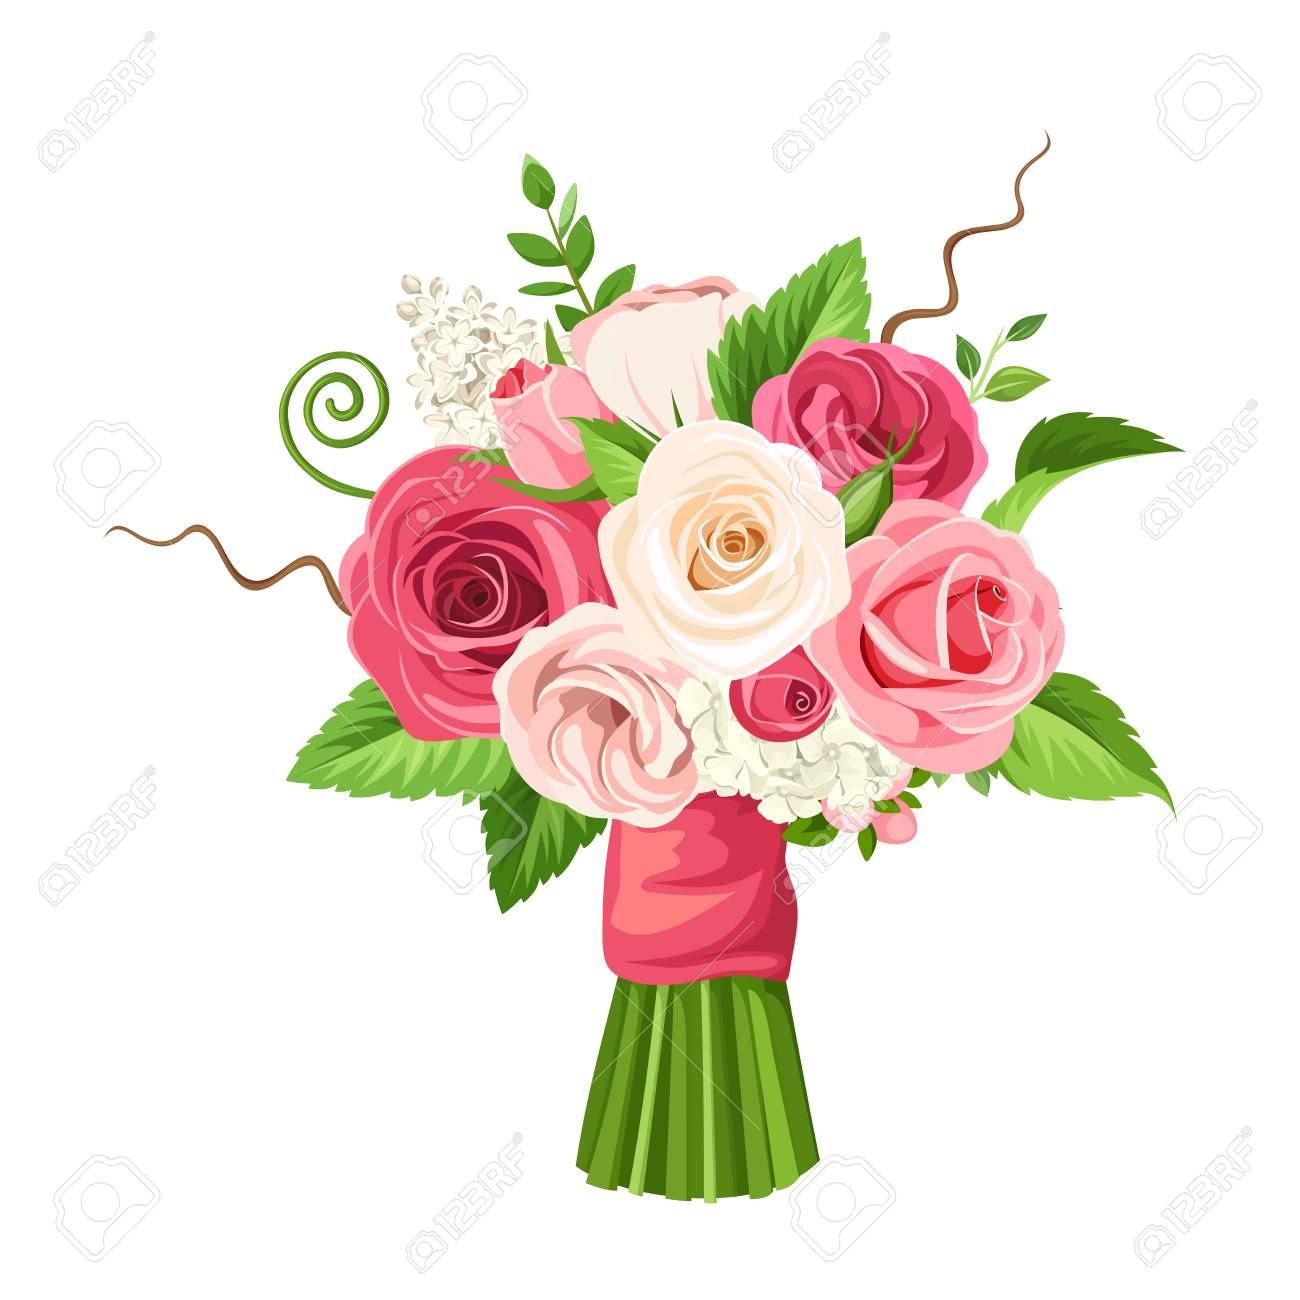 Bouquet Of Roses vector bouquet of roses and flowers royalty free cliparts, vectors